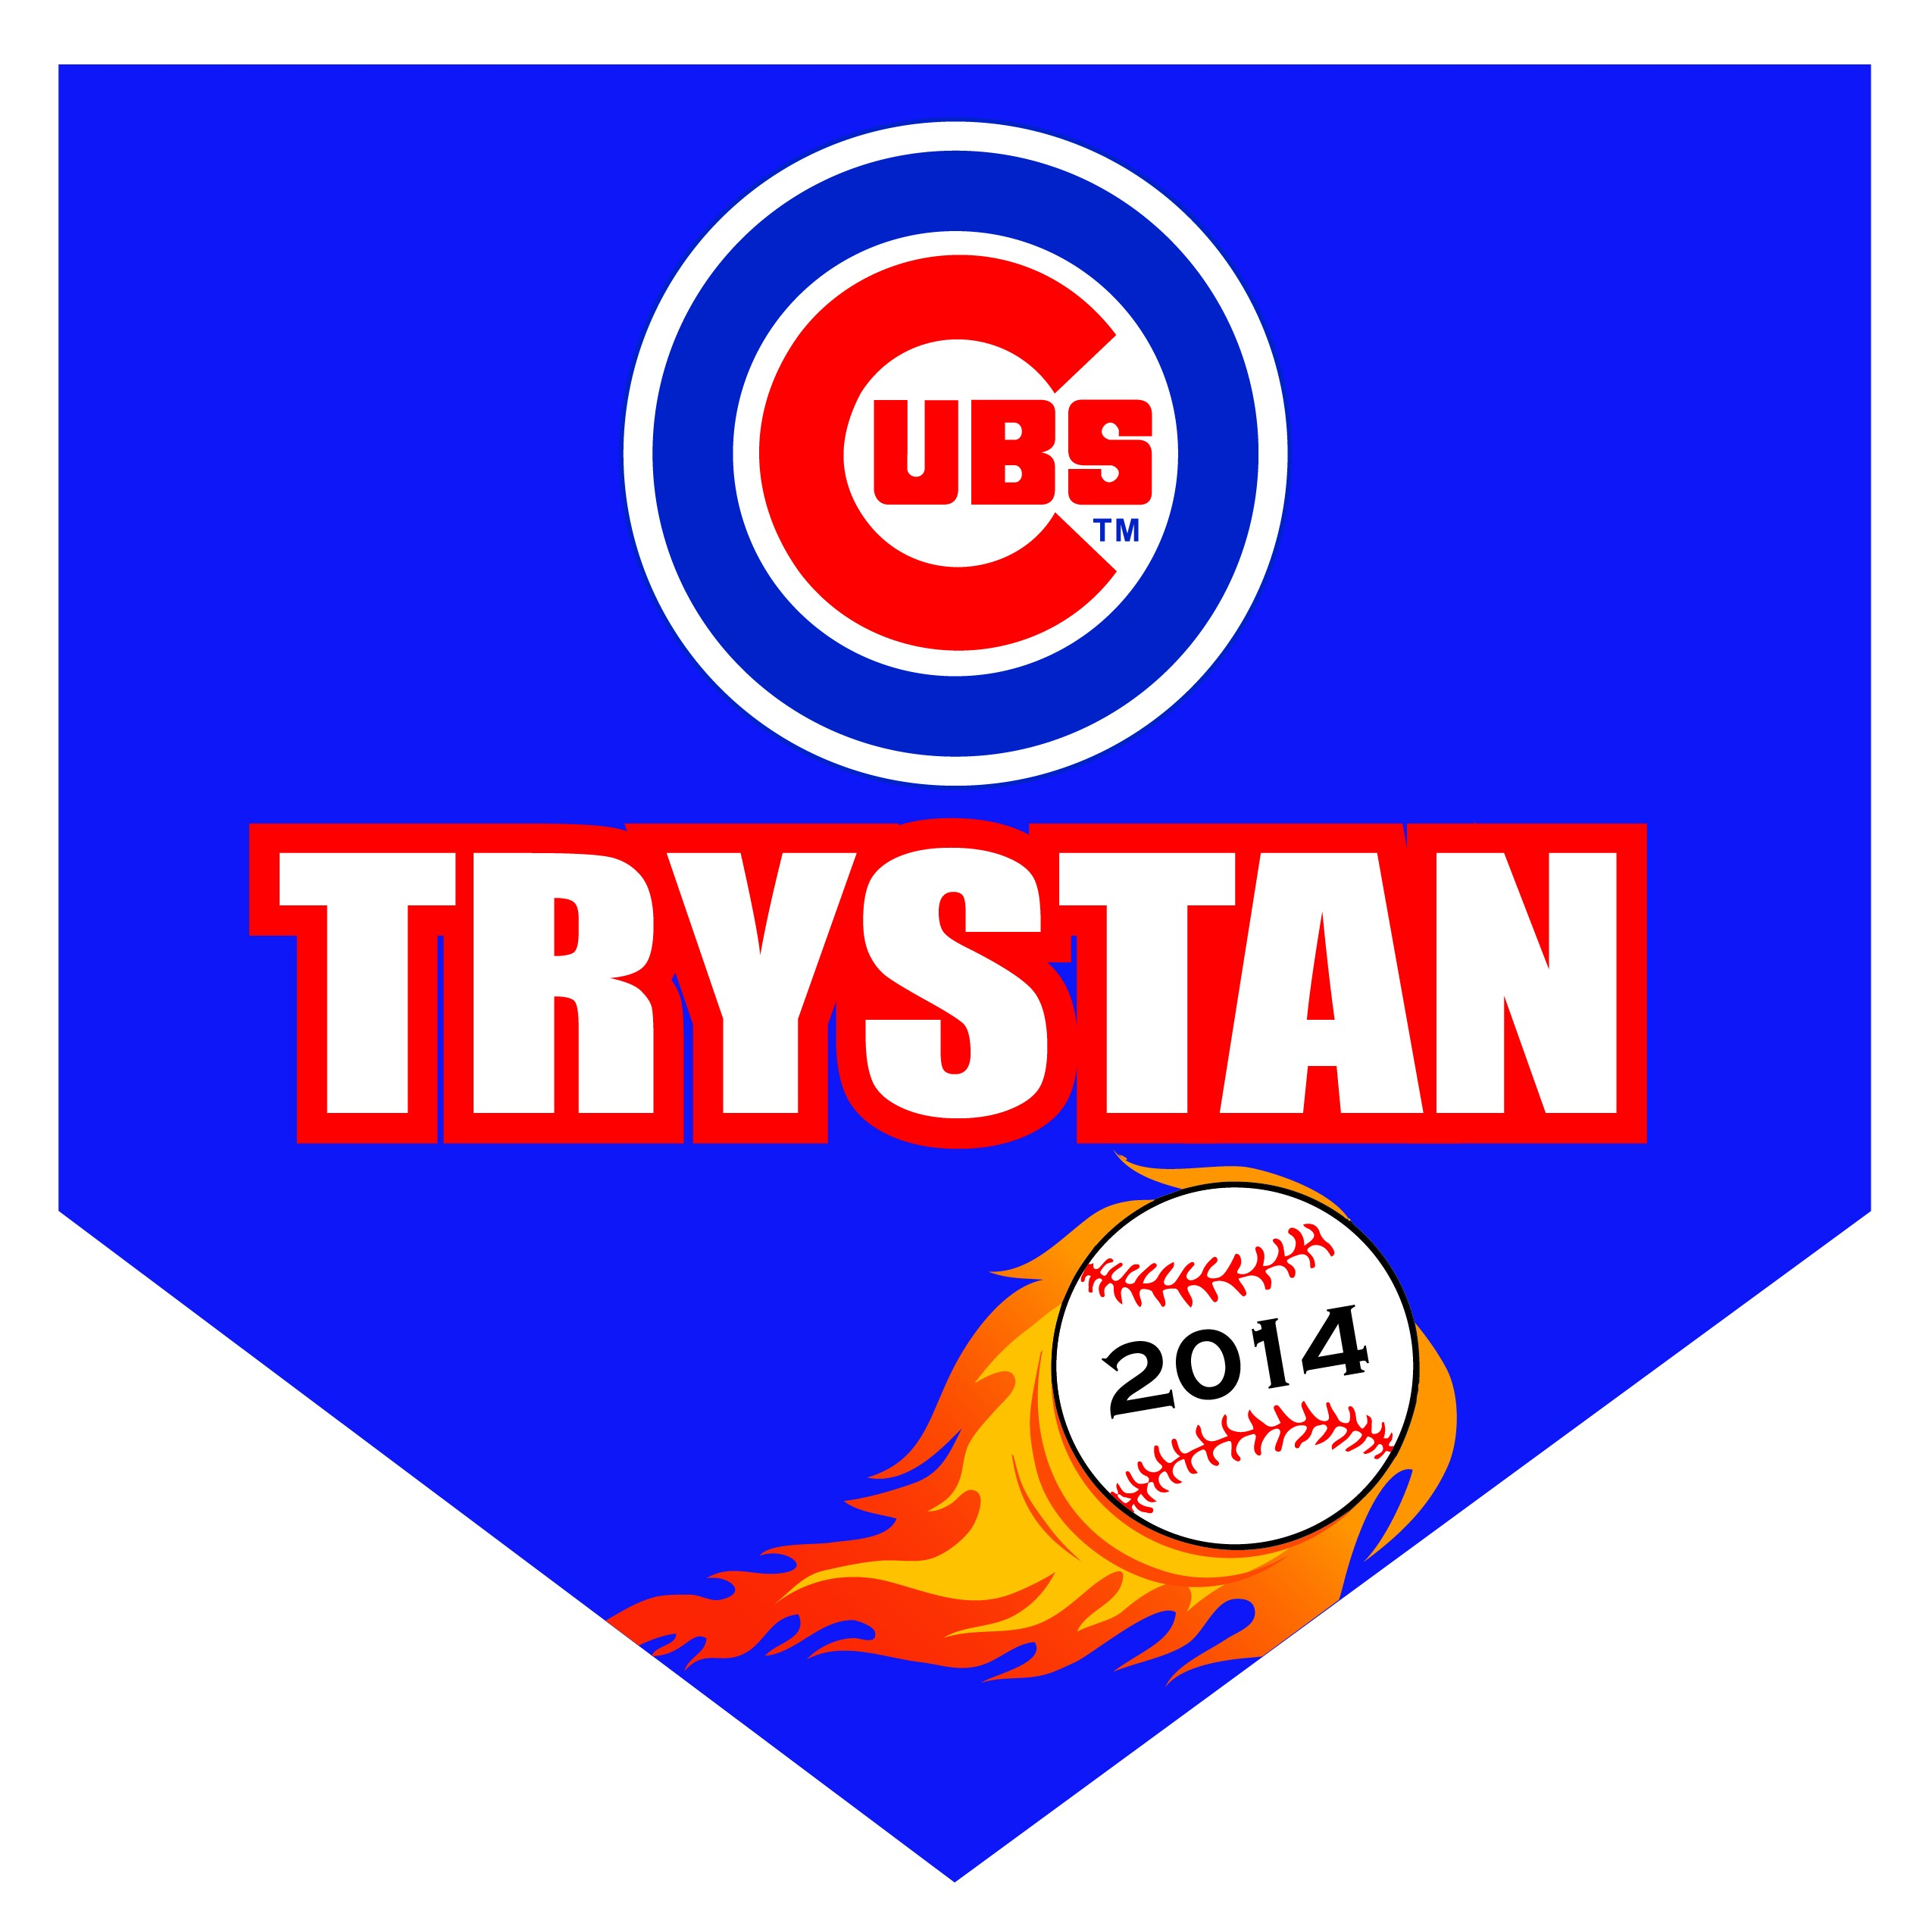 Cubs Home Plate Individual Team Pennant